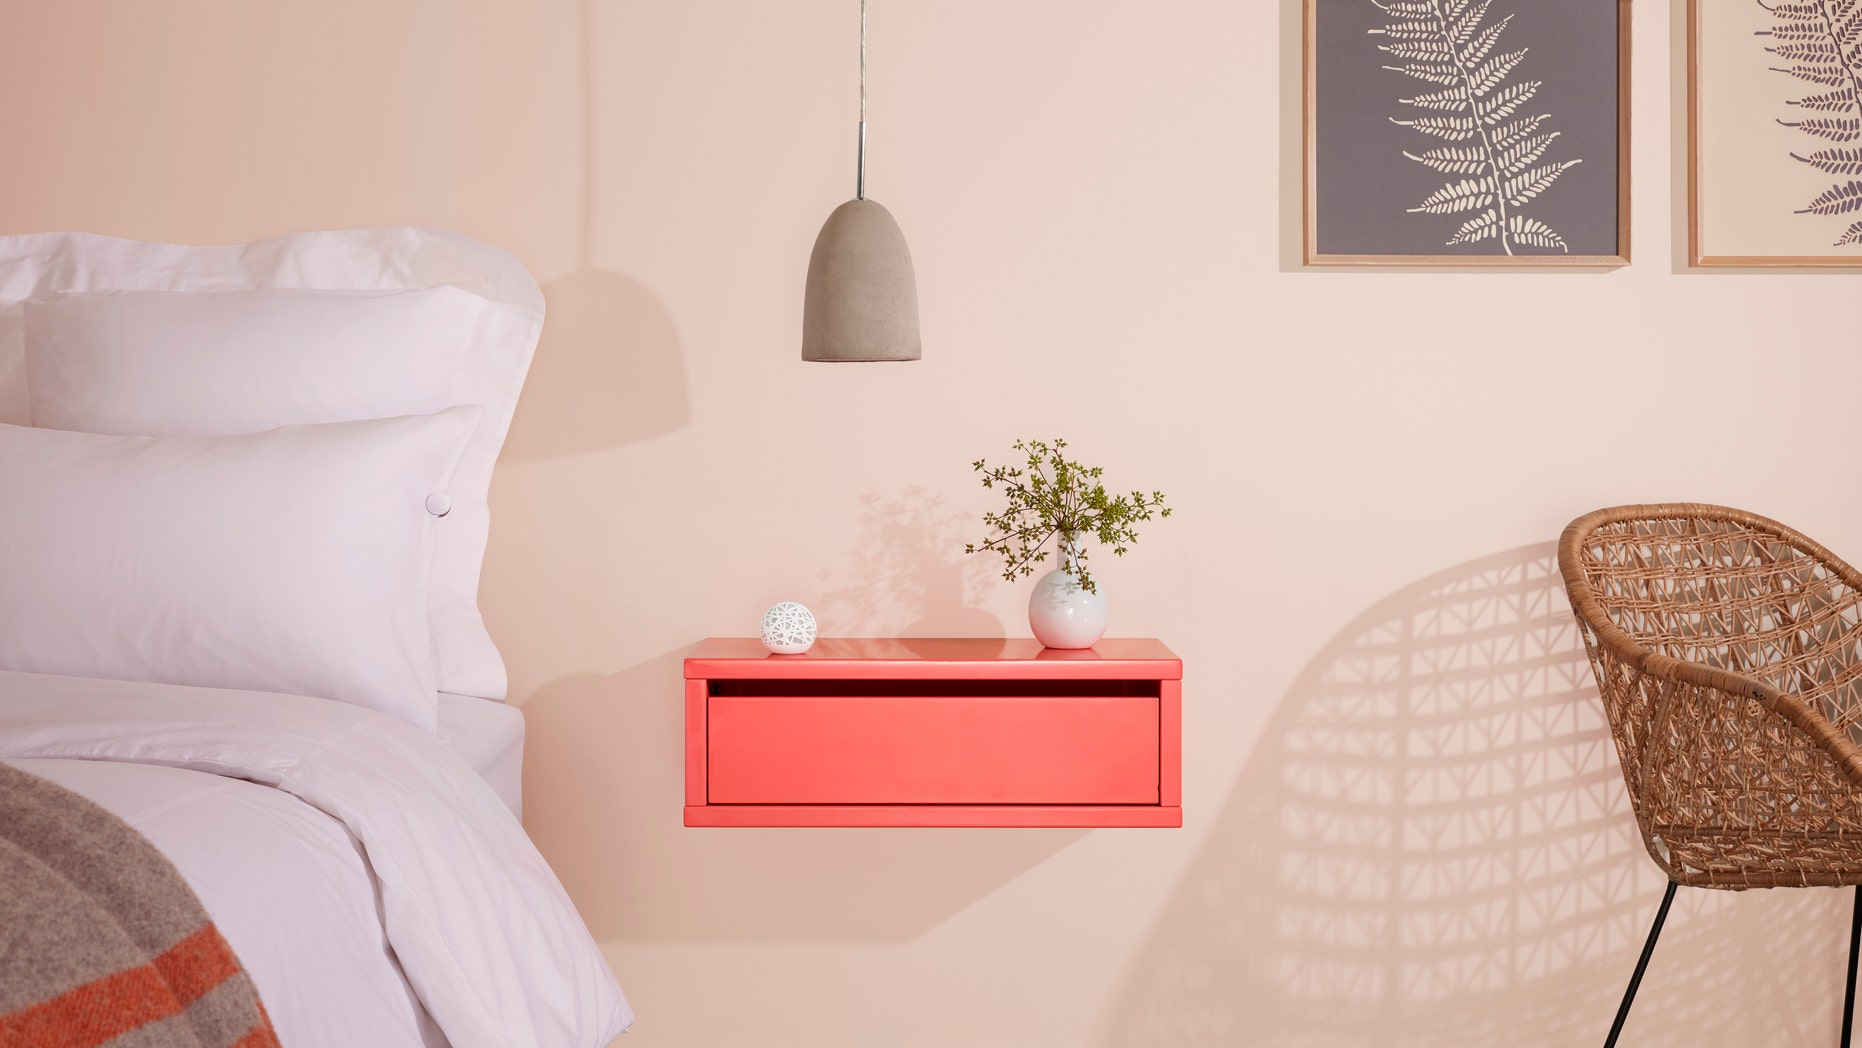 Sense is a little orb that sits in your room and monitors things like noise, light and temperature. (hello)